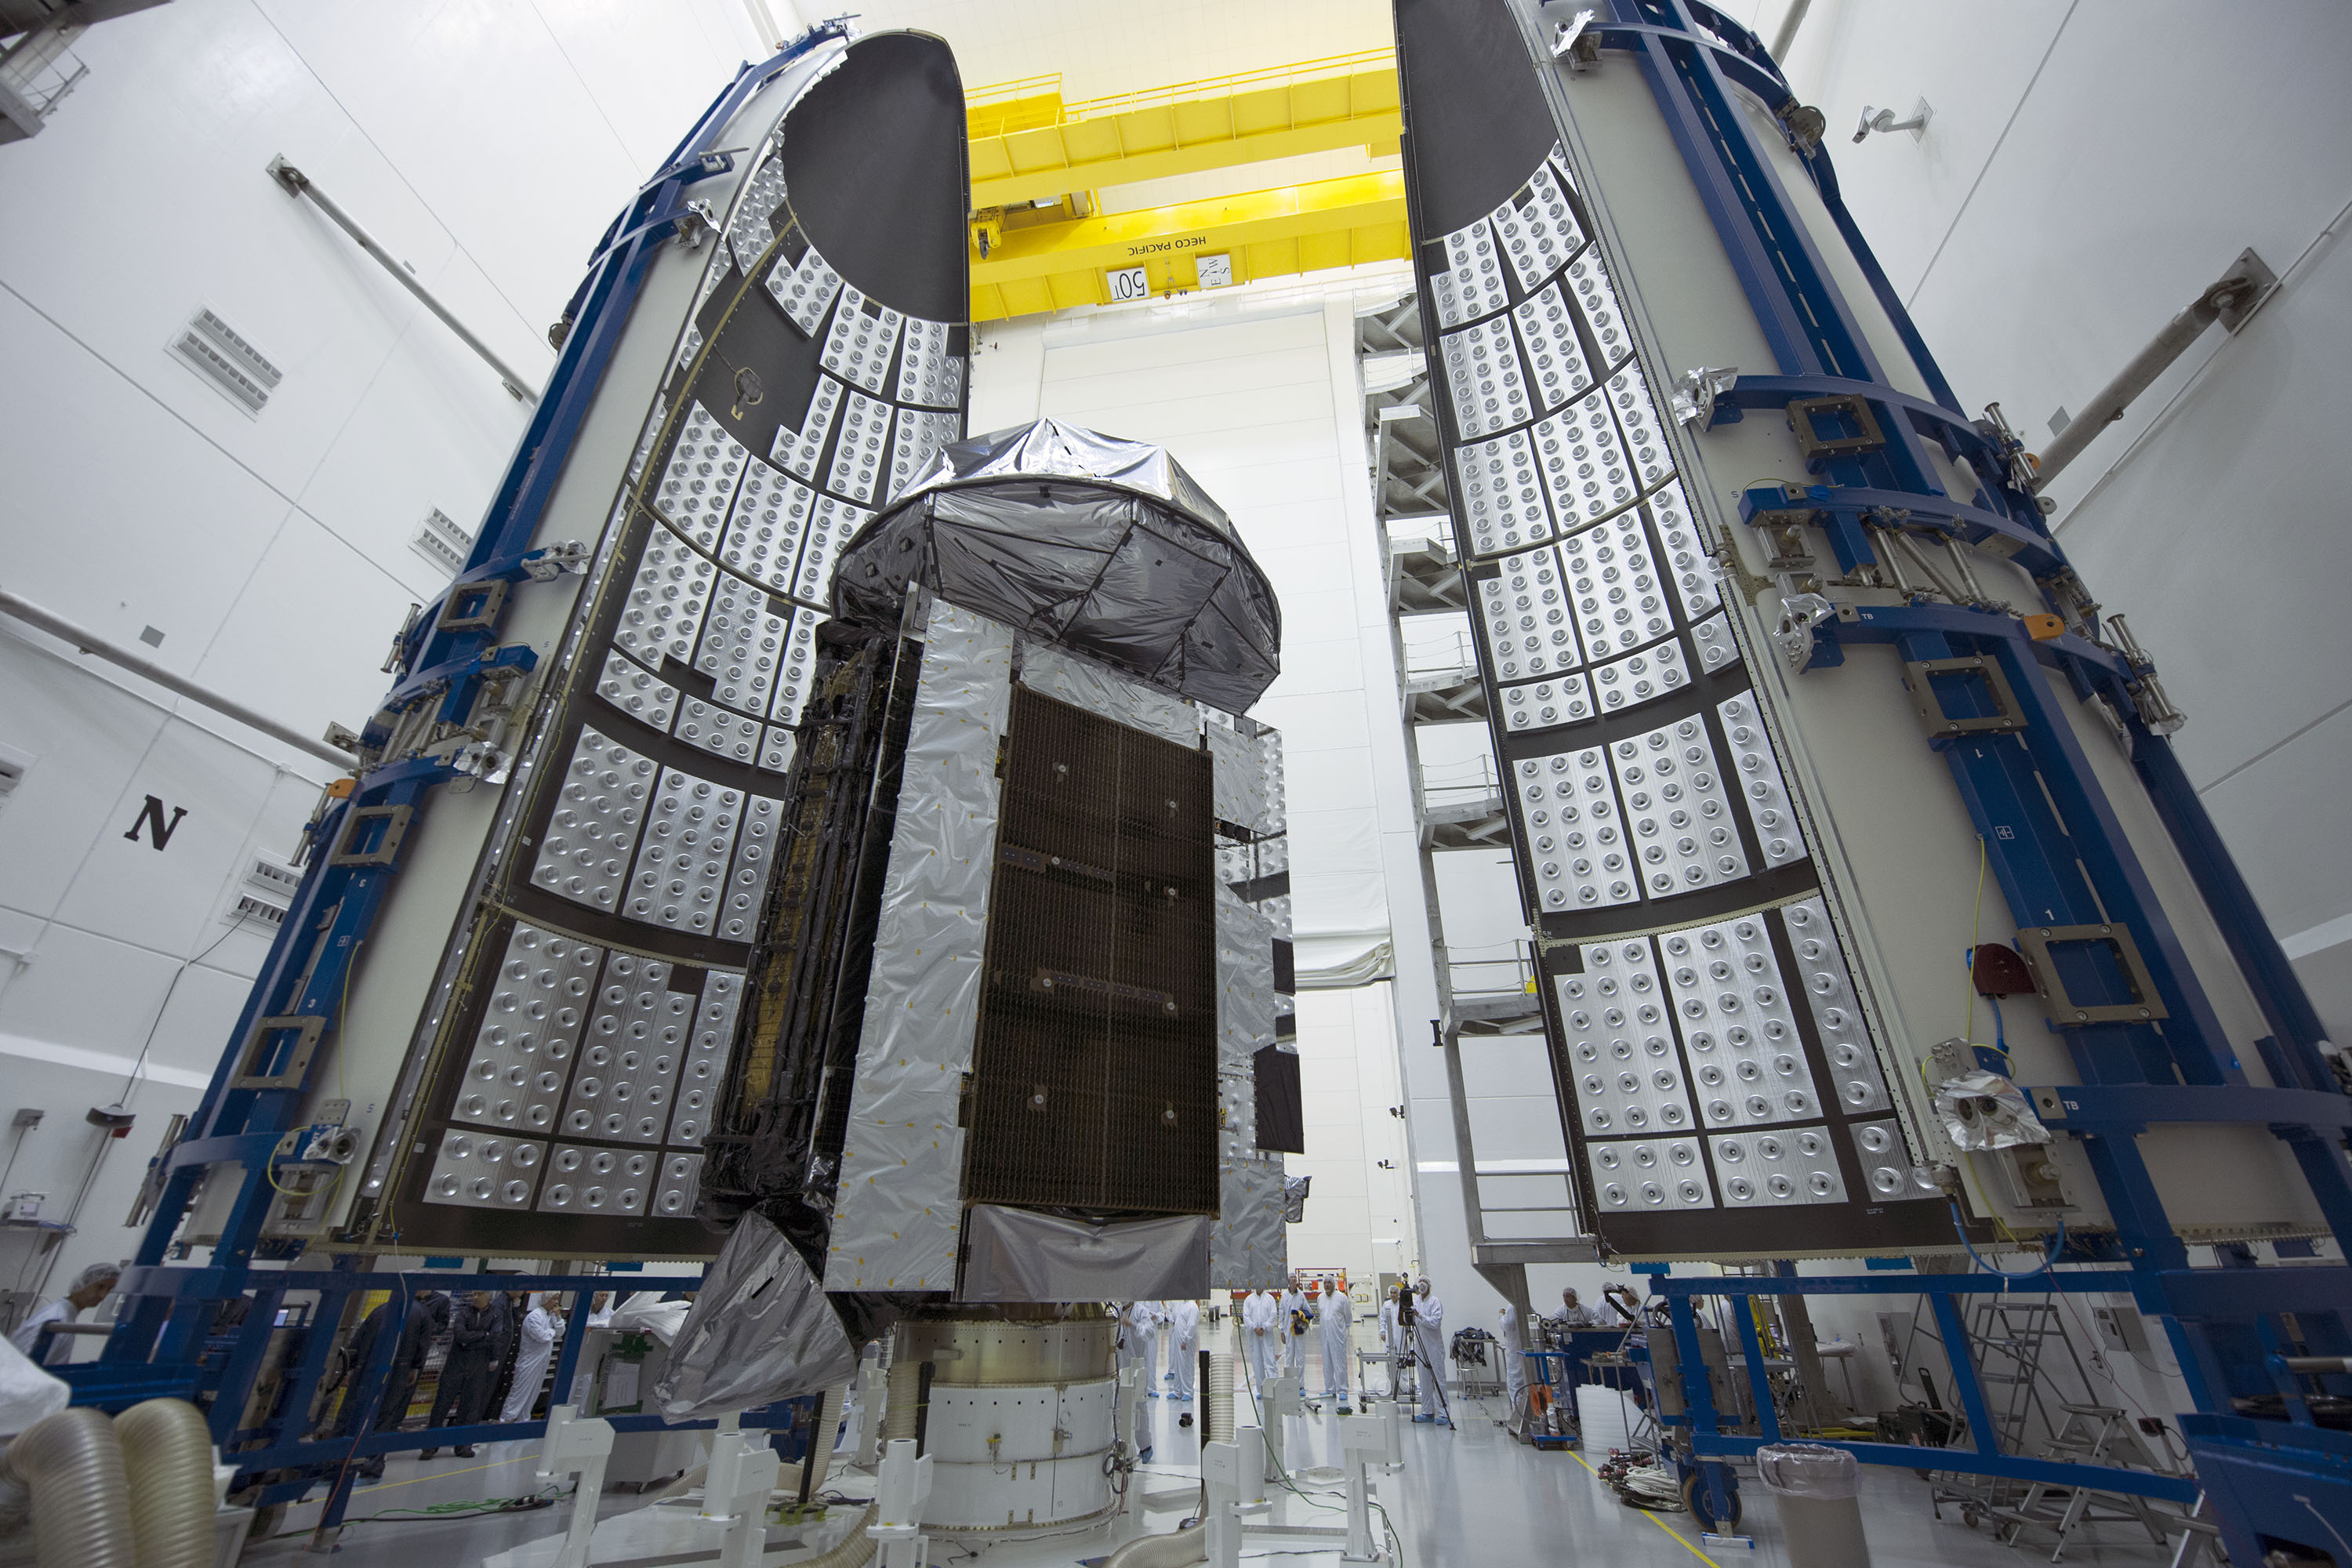 MUOS-4 encapsulated in its protective launch vehicle fairing for its Aug. 31, 2015 launch from Cape Canaveral Air Force Station. United Launch Alliance Photo